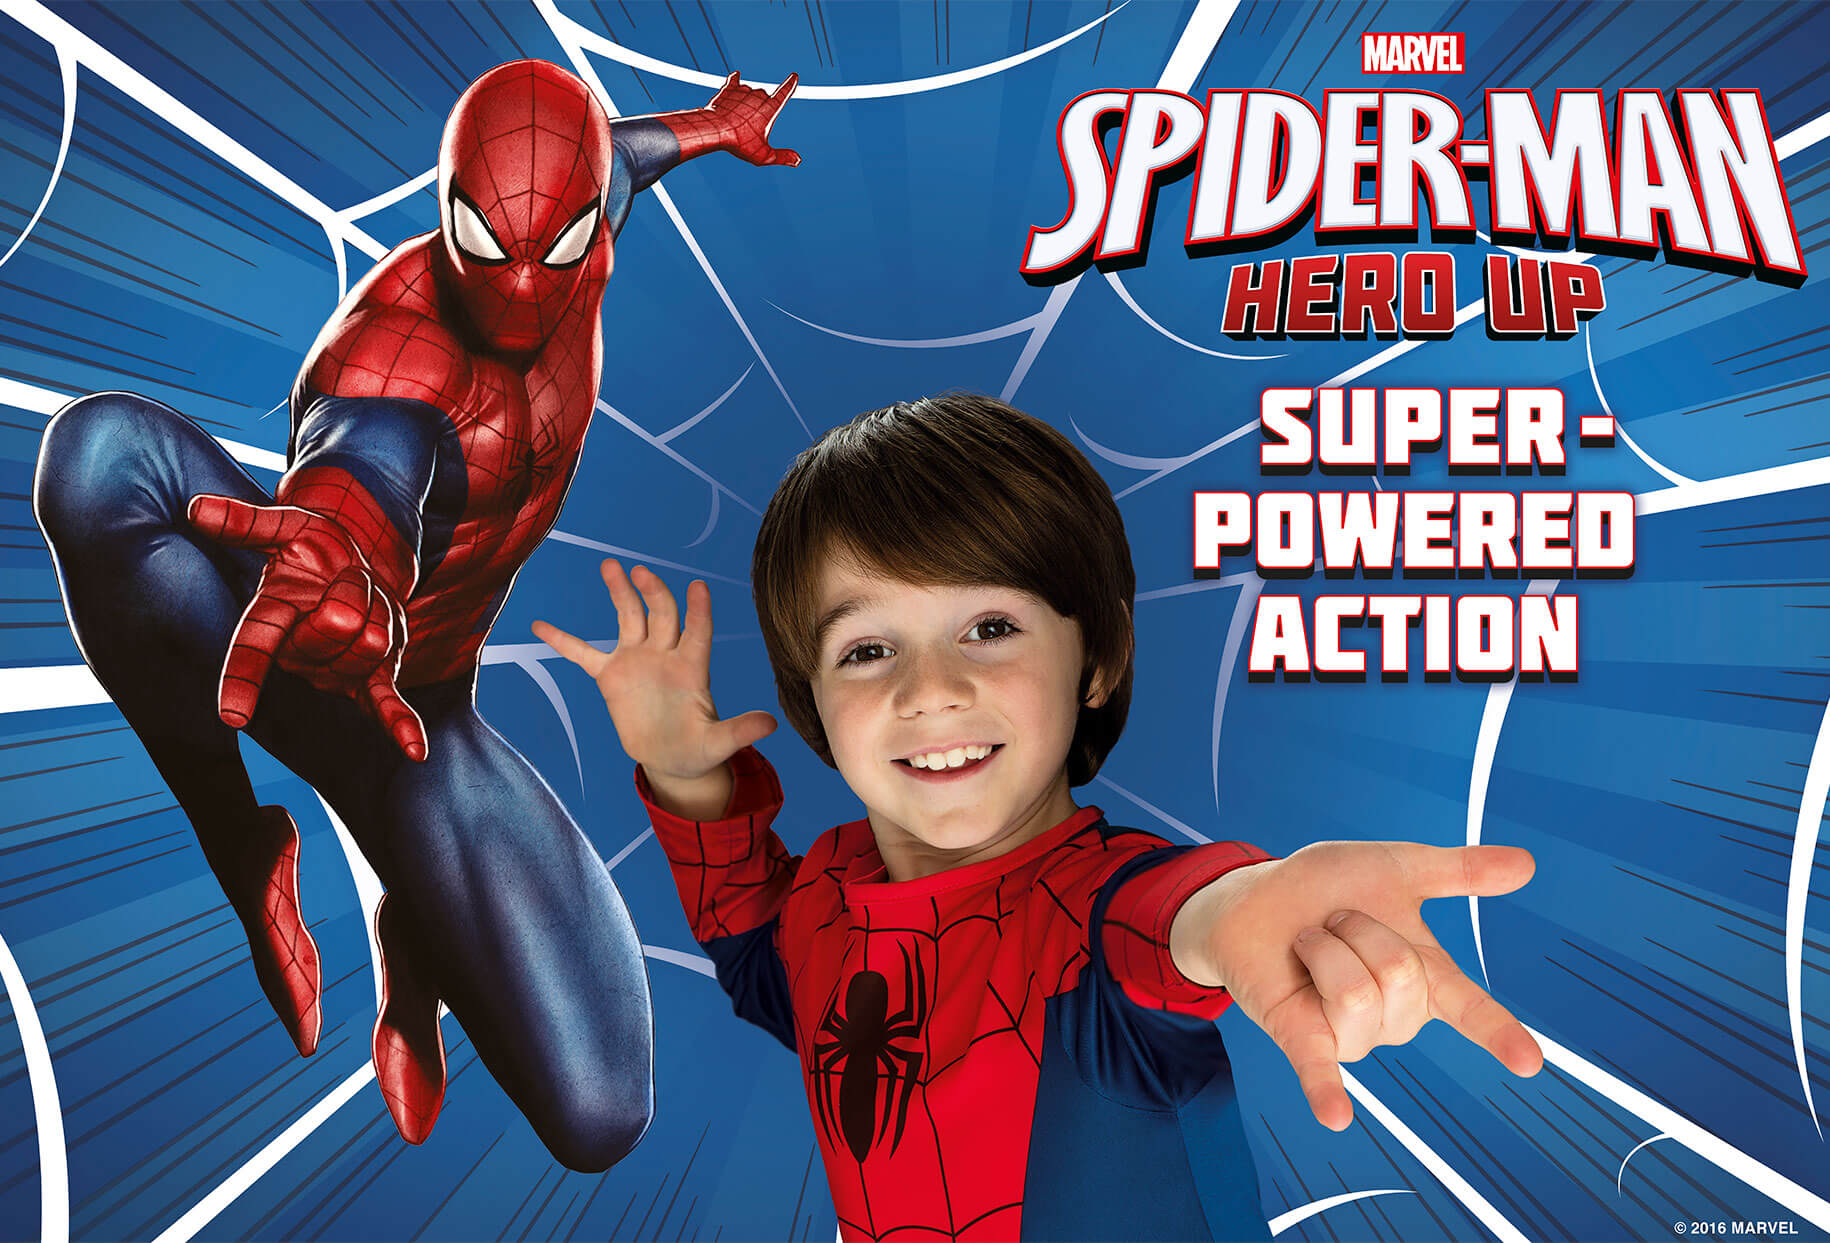 Spiderman Hero Up - Super powered action